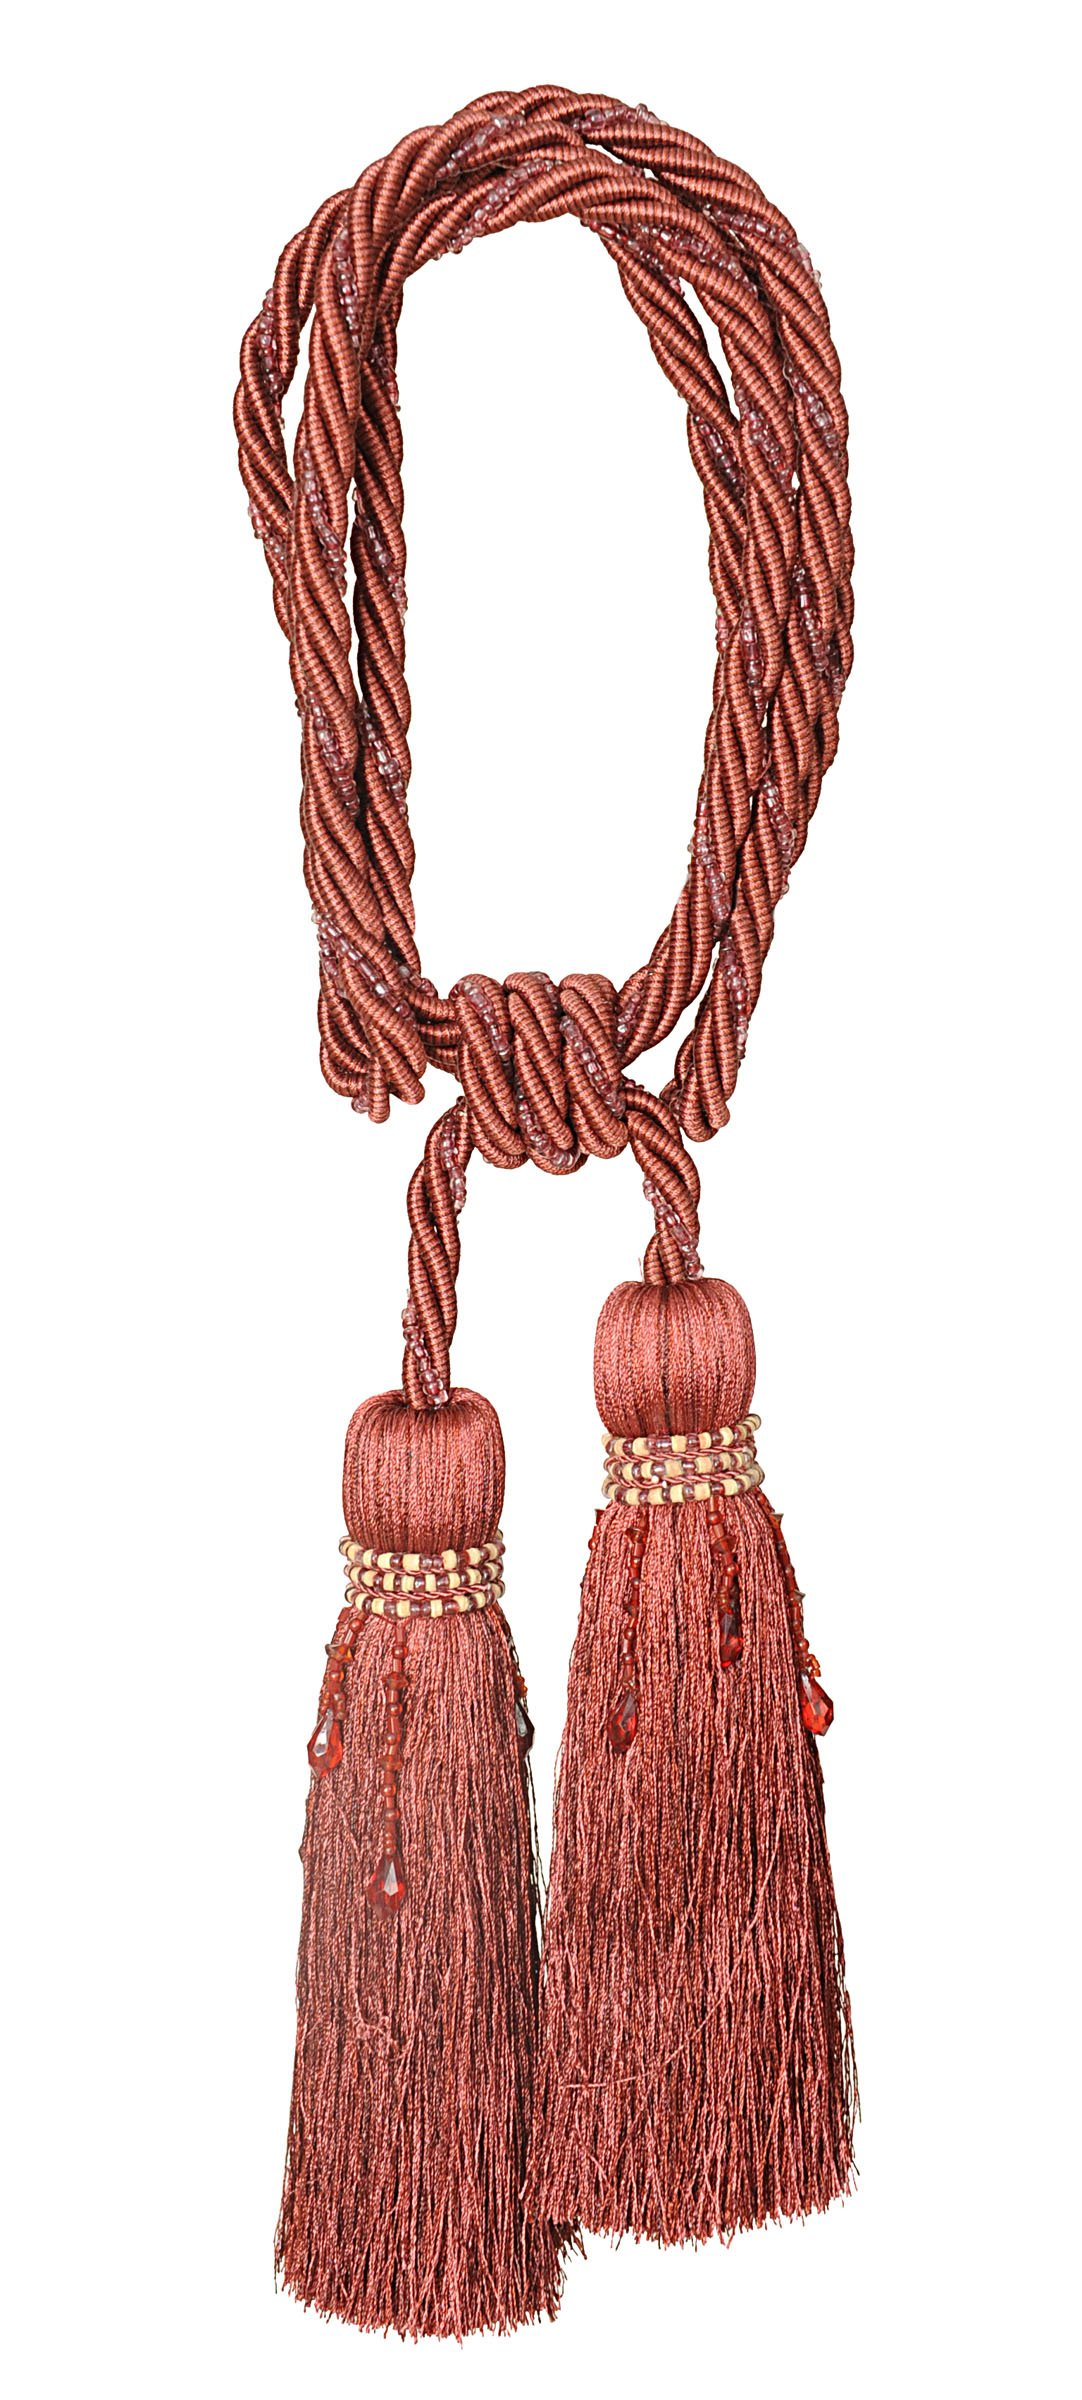 India House 76204 Milano Tieback with 8-Inch Double Tassel and 36-Inch Cord, Rust Mix